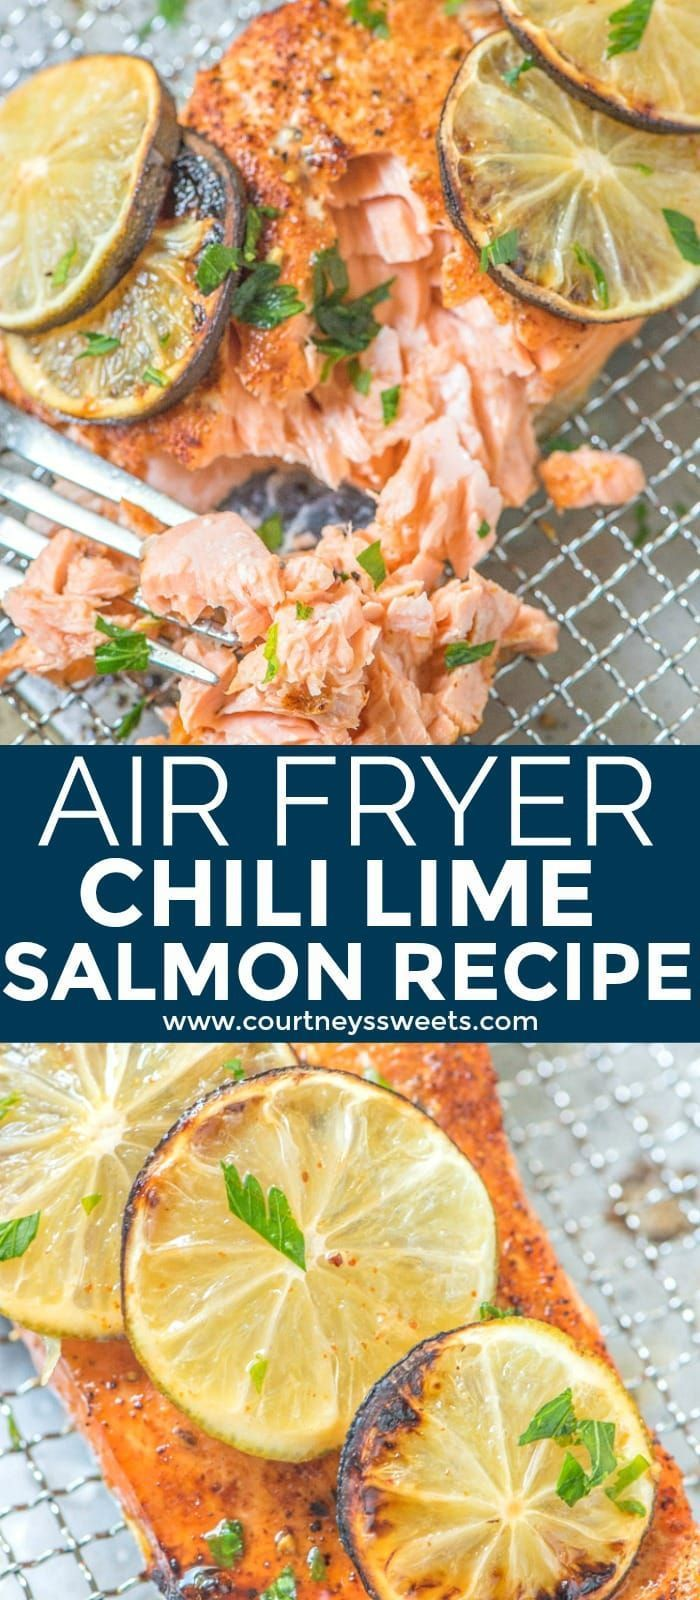 ThisAir Fryer Salmon recipe is a family favorite! It's full of flavor and a great way to cook chili lime salmon in the Cuisinart Air Fryer Toaster Oven.